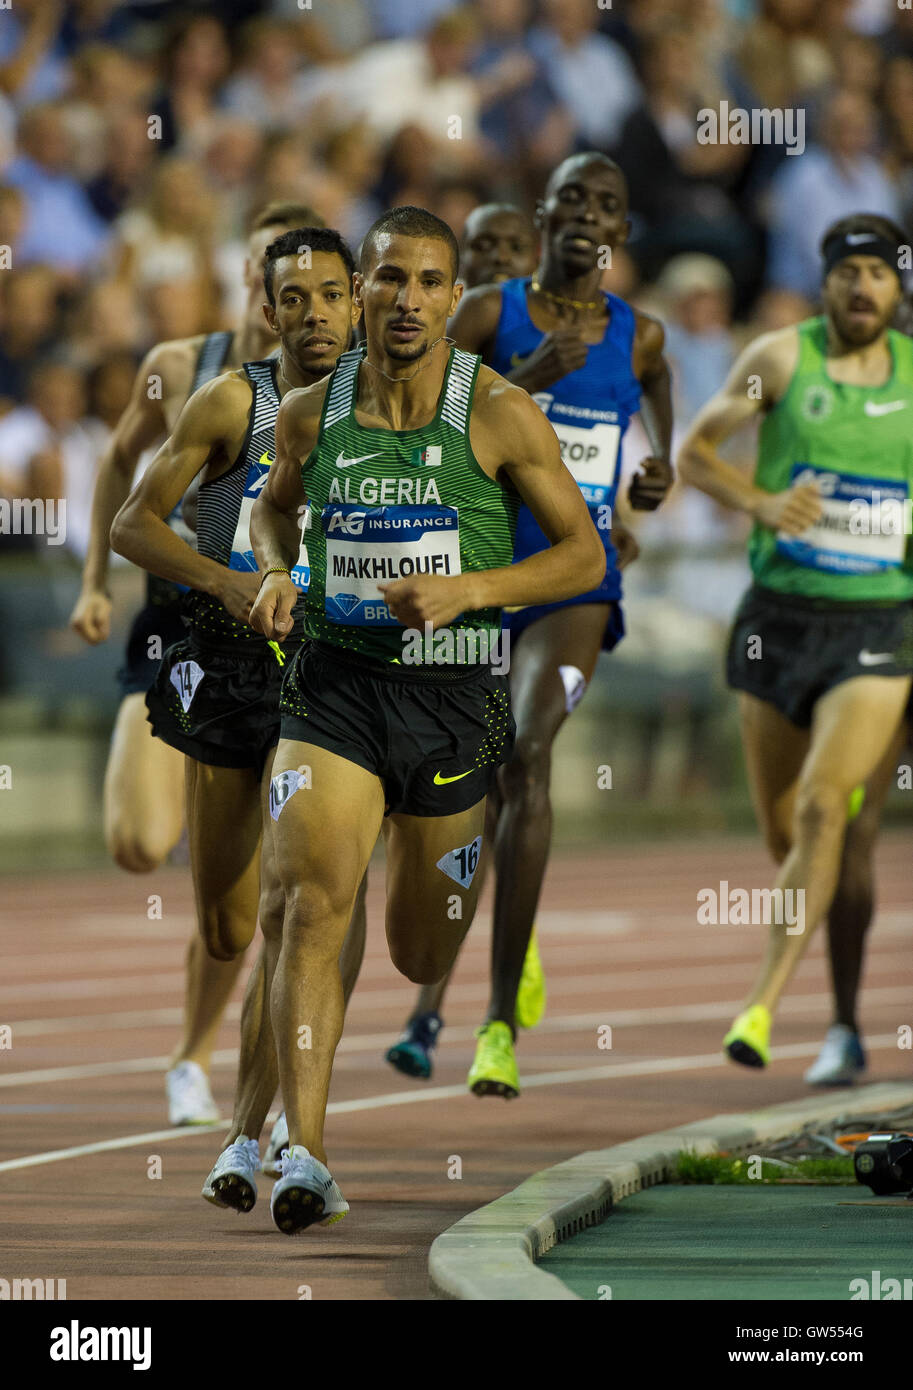 BRUSSELS, BELGIUM - SEPTEMBER 9:  Taoufik Makhloufi competing in the Men's 1500m at the AG Insurance Memorial - Stock Image